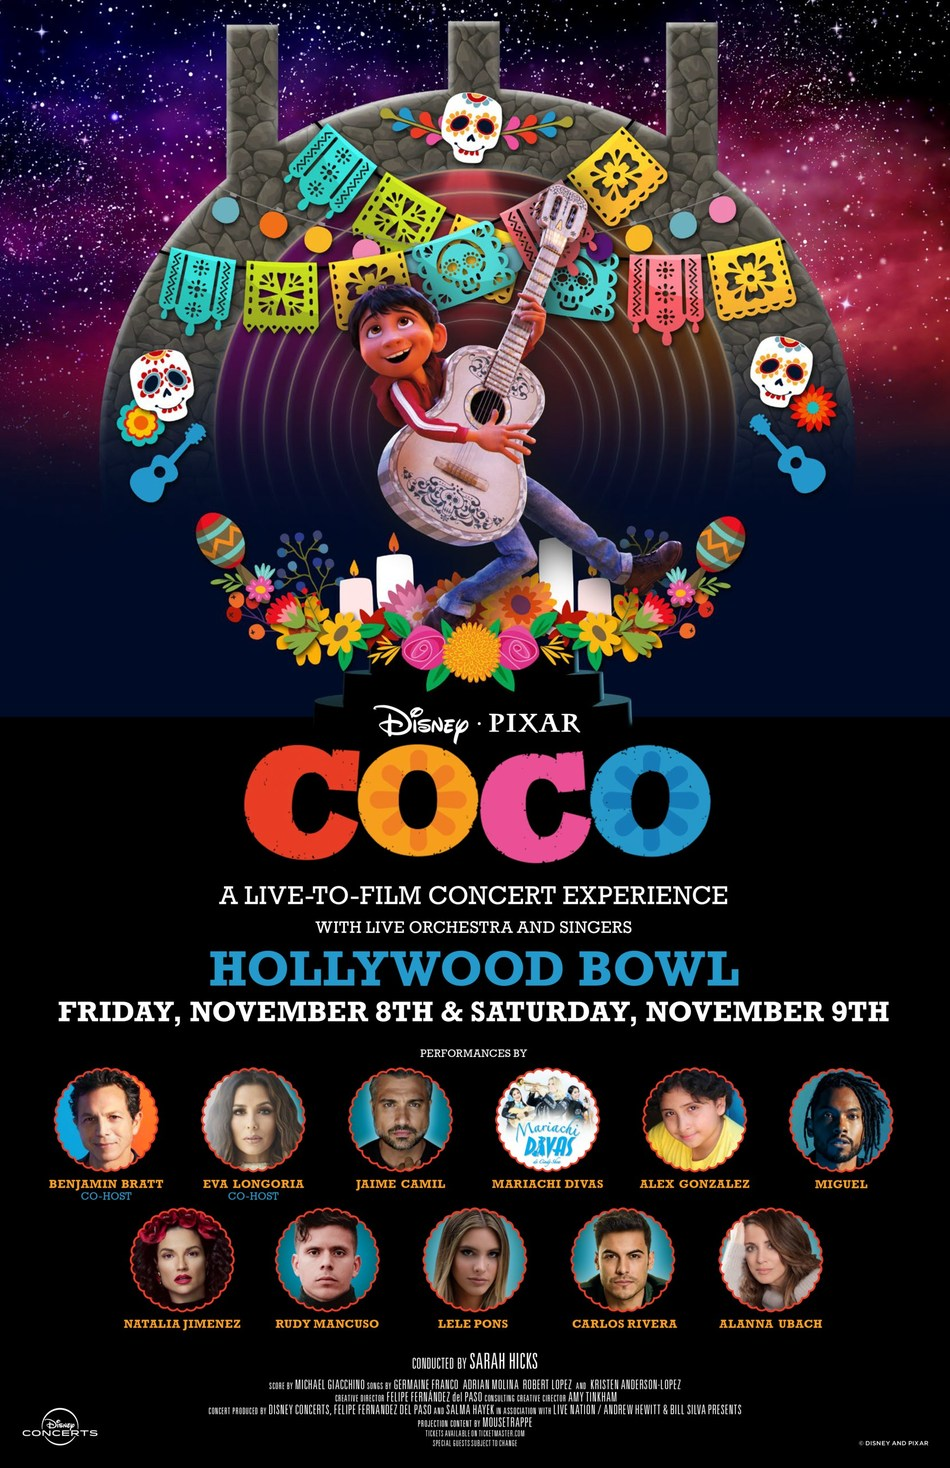 Disney And Pixar's 'Coco' Comes To The Hollywood Bowl For The First Time Live In Concert